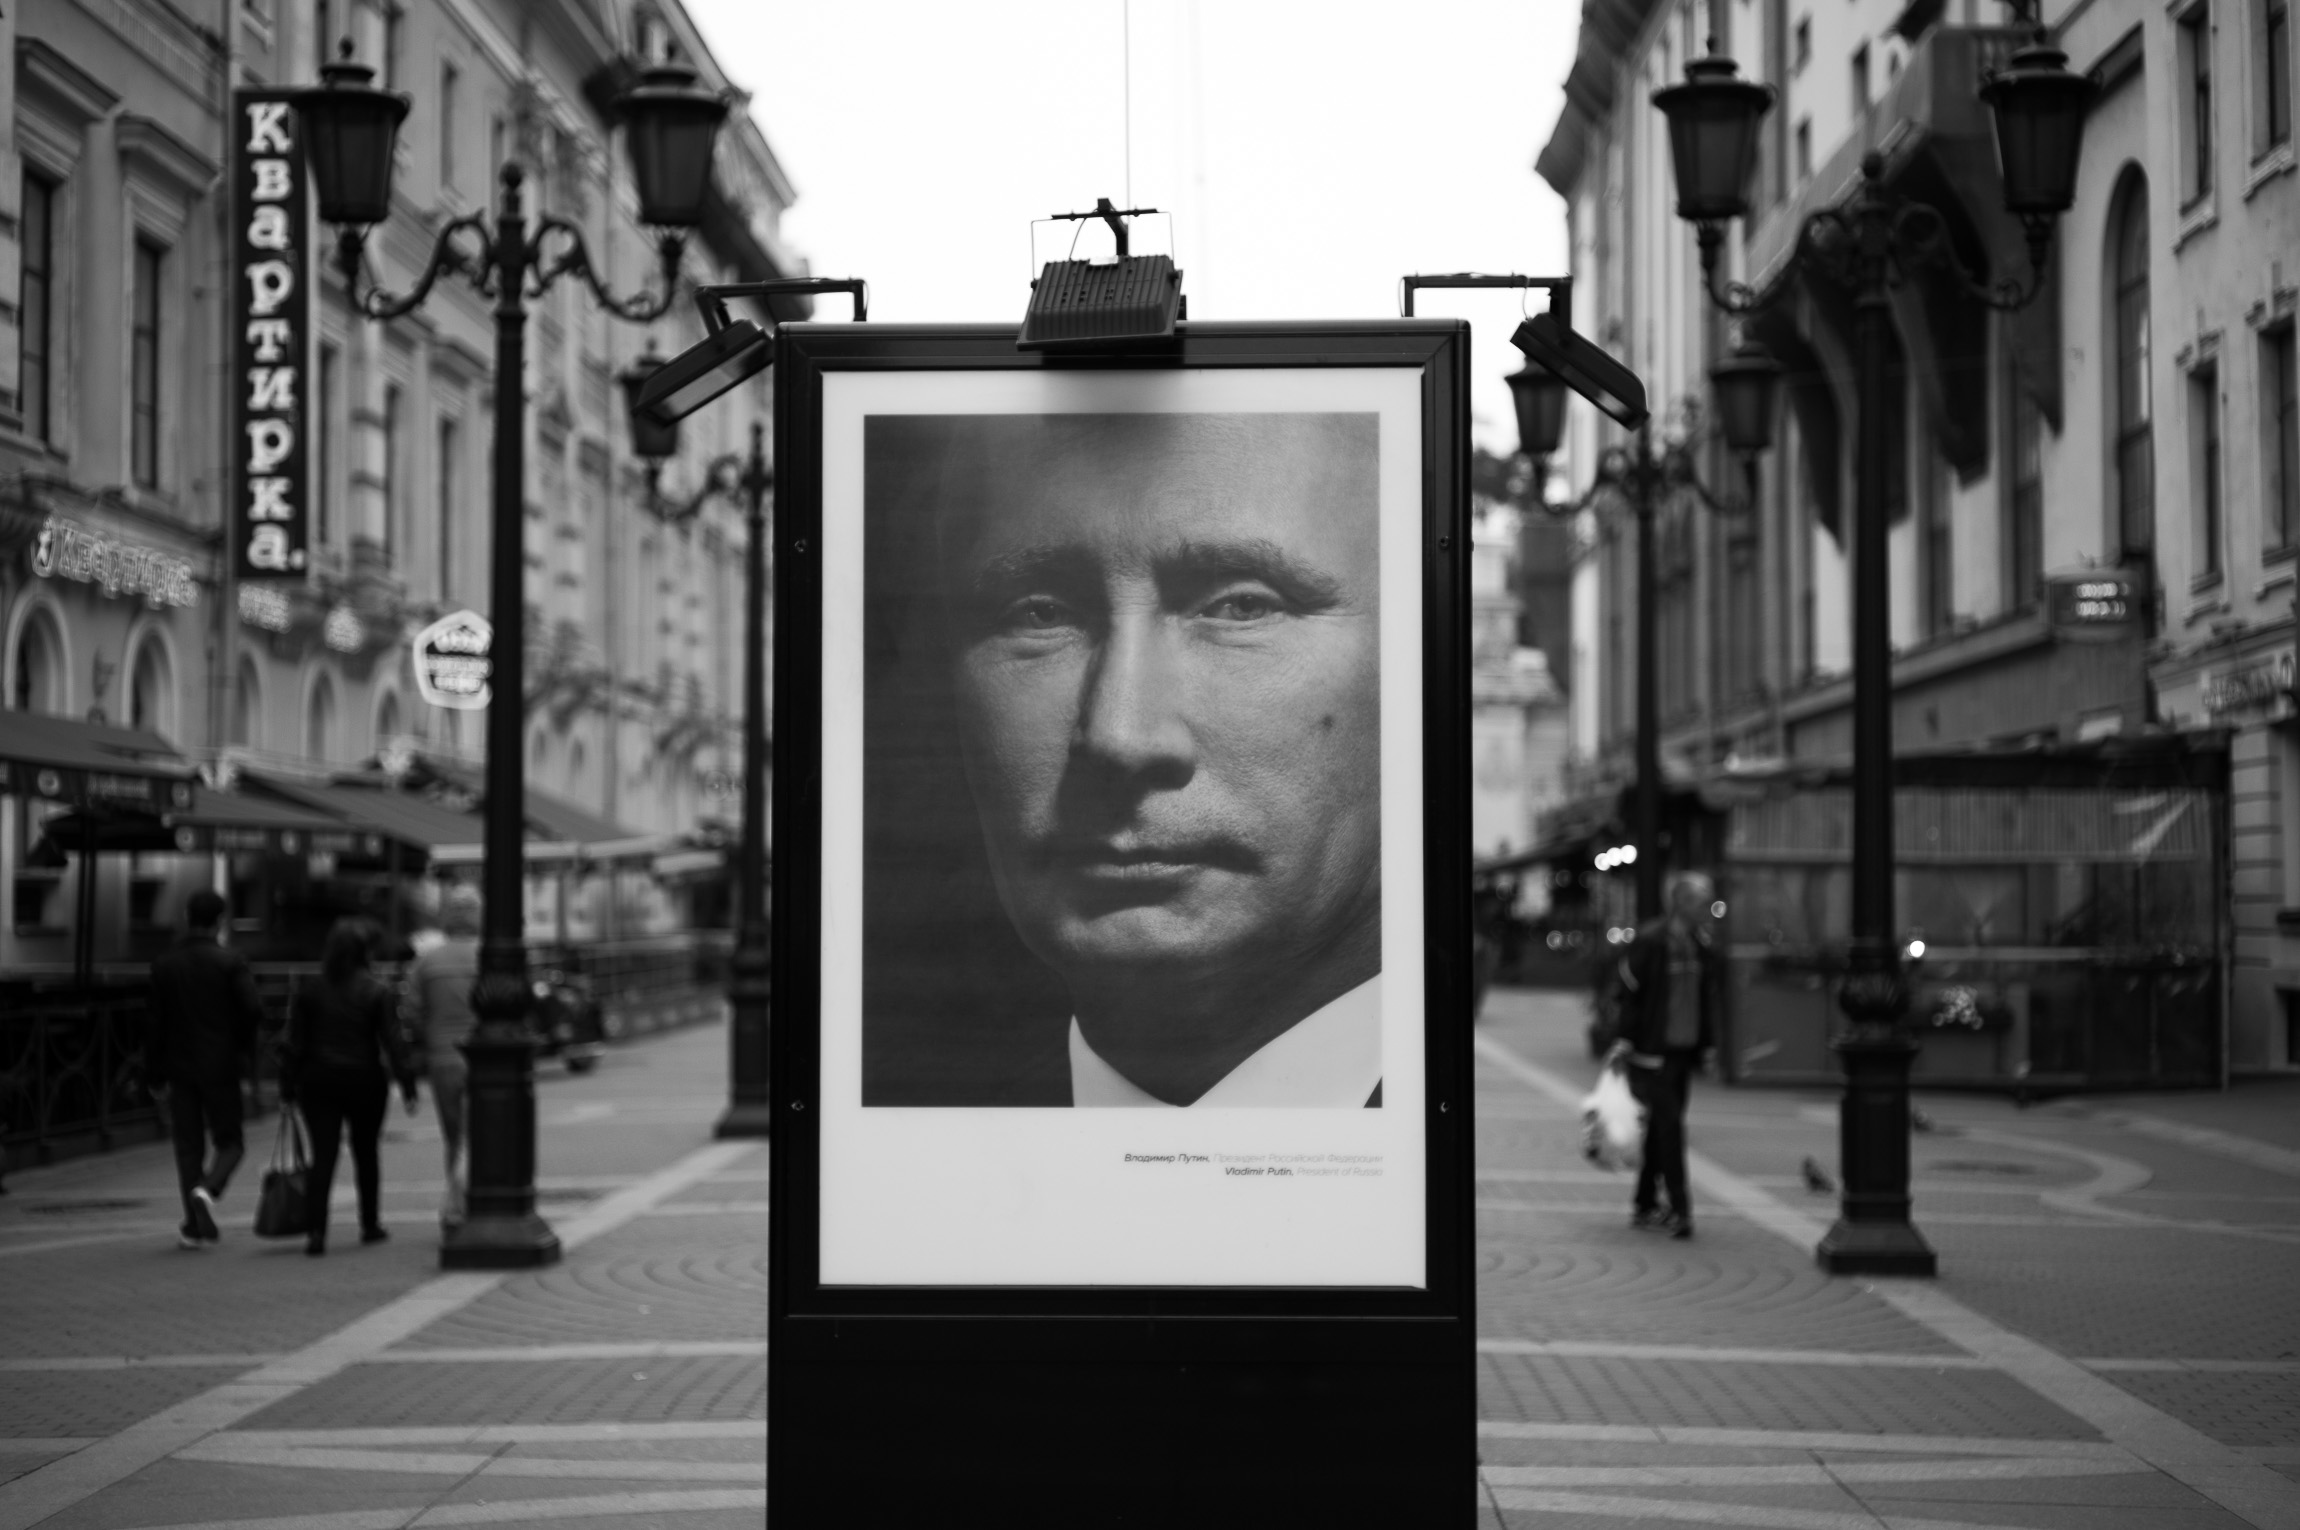 The Man and his Hometown Saint Petersburg, Russia